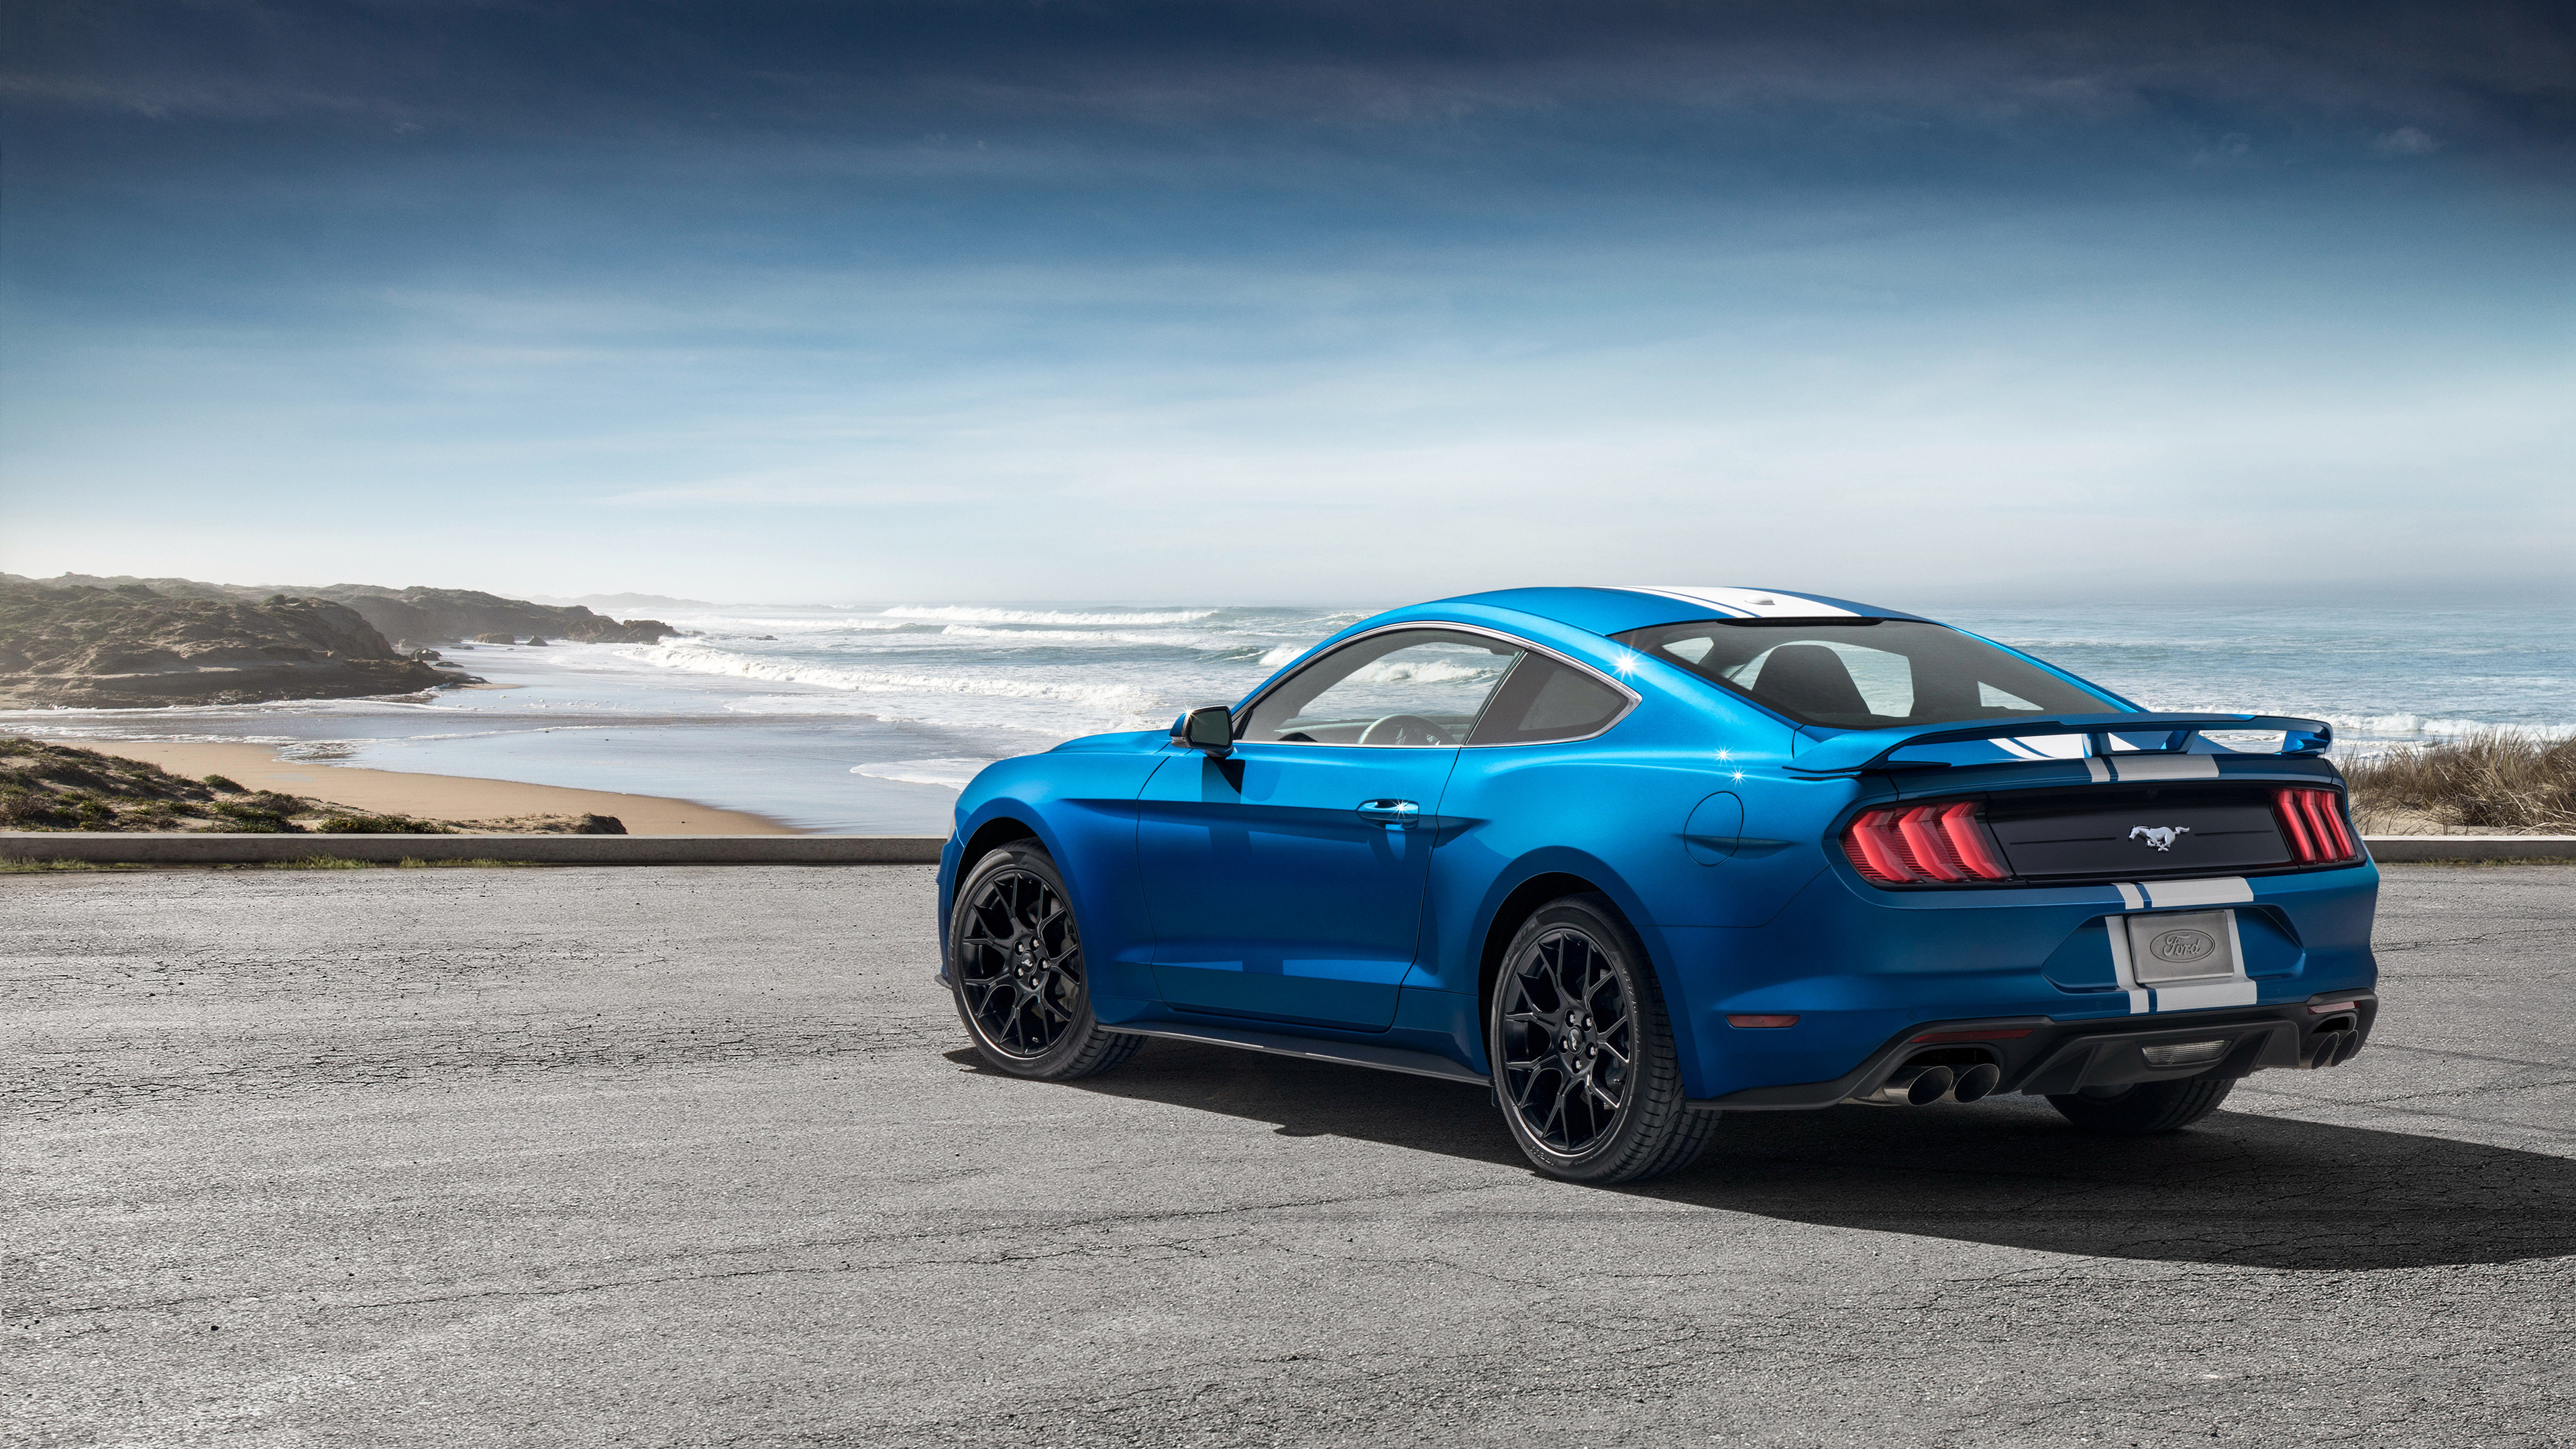 ford mustang ecoboost performance pack 1 2018 rear 1539110886 - Ford Mustang EcoBoost Performance Pack 1 2018 Rear - mustang wallpapers, hd-wallpapers, ford wallpapers, ford mustang wallpapers, 4k-wallpapers, 2018 cars wallpapers